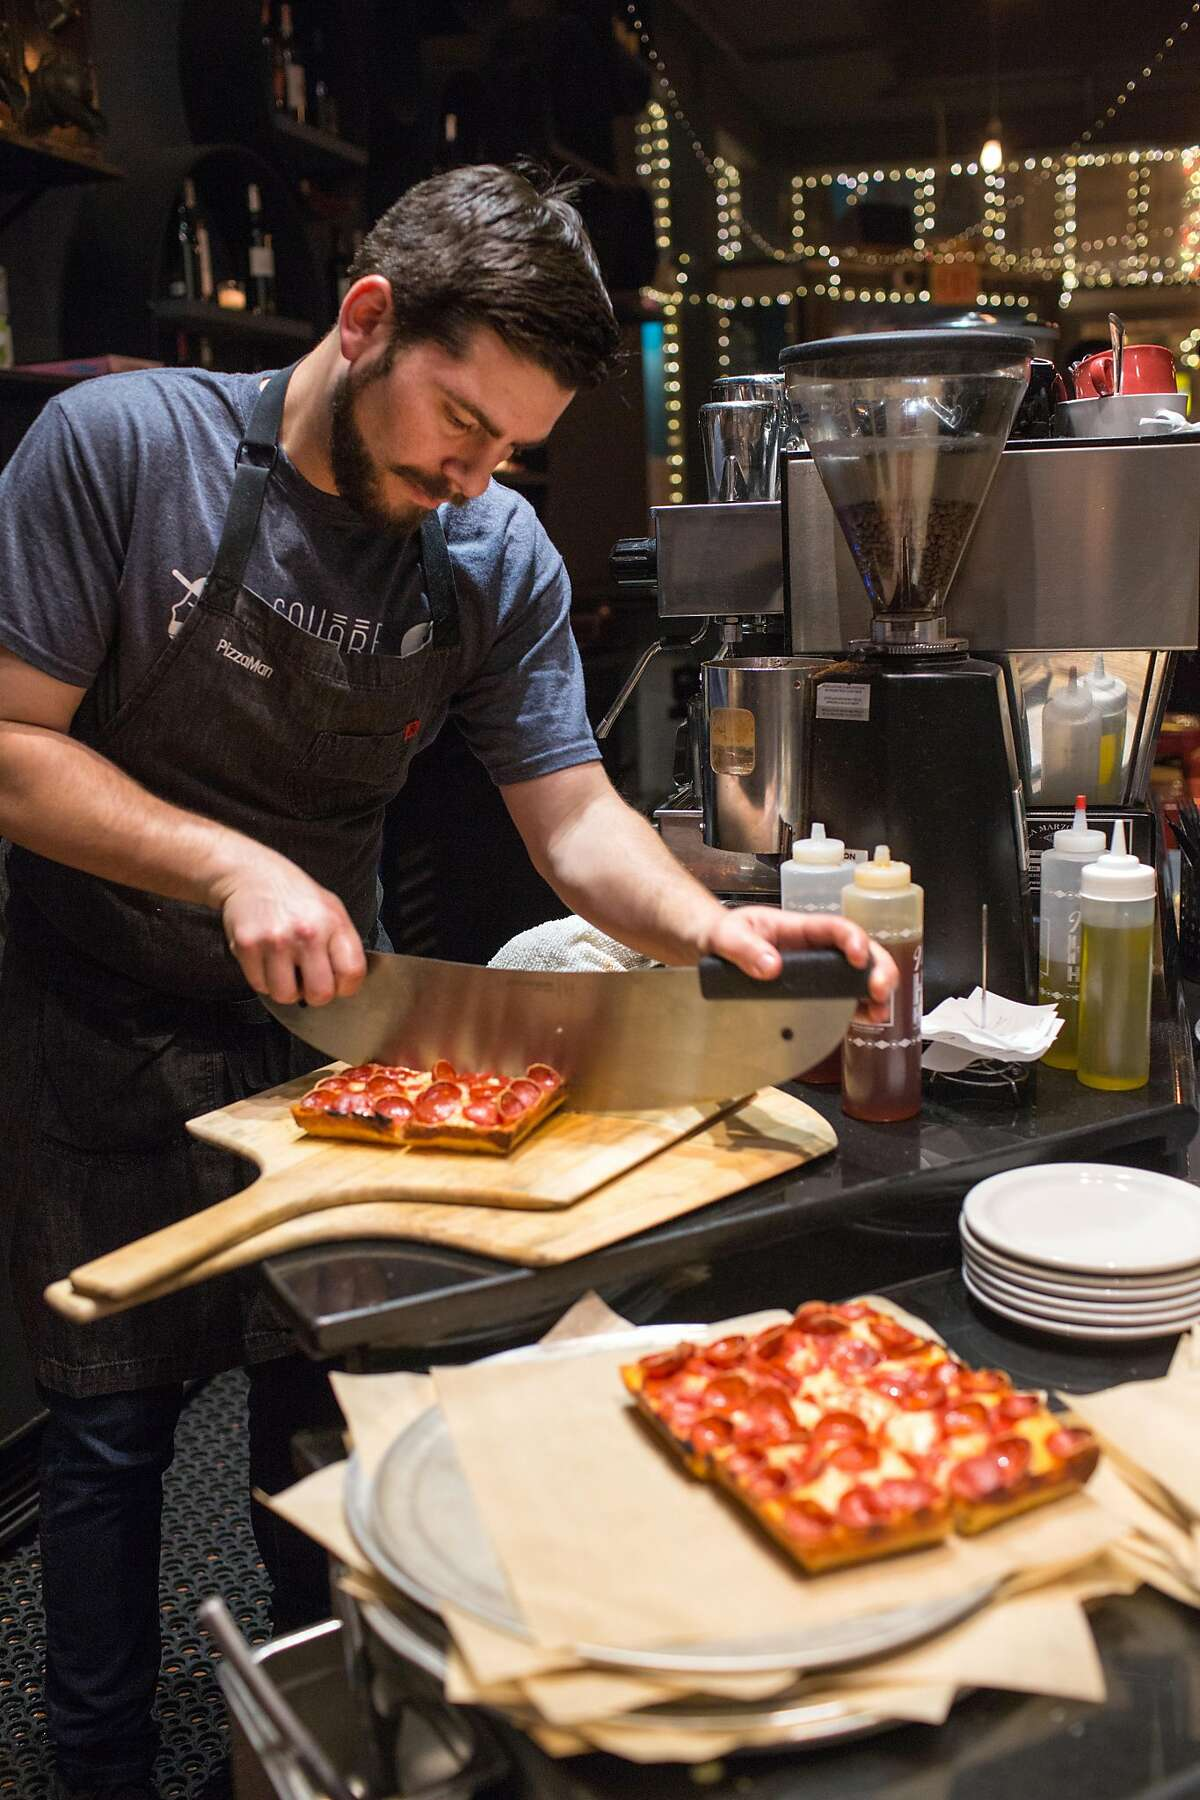 Marc Schechter, a chef, slices the pizza. Marc Schechter and Danny Stoller are the two guys behind the new pizza pop-up that specializes in Detroit style pizza, a newly popularized regional style baked in rectangular pans. Their last pop-up of 2018 was at Vinyl, on Friday, December 21, 2018 in San Francisco, Calif.